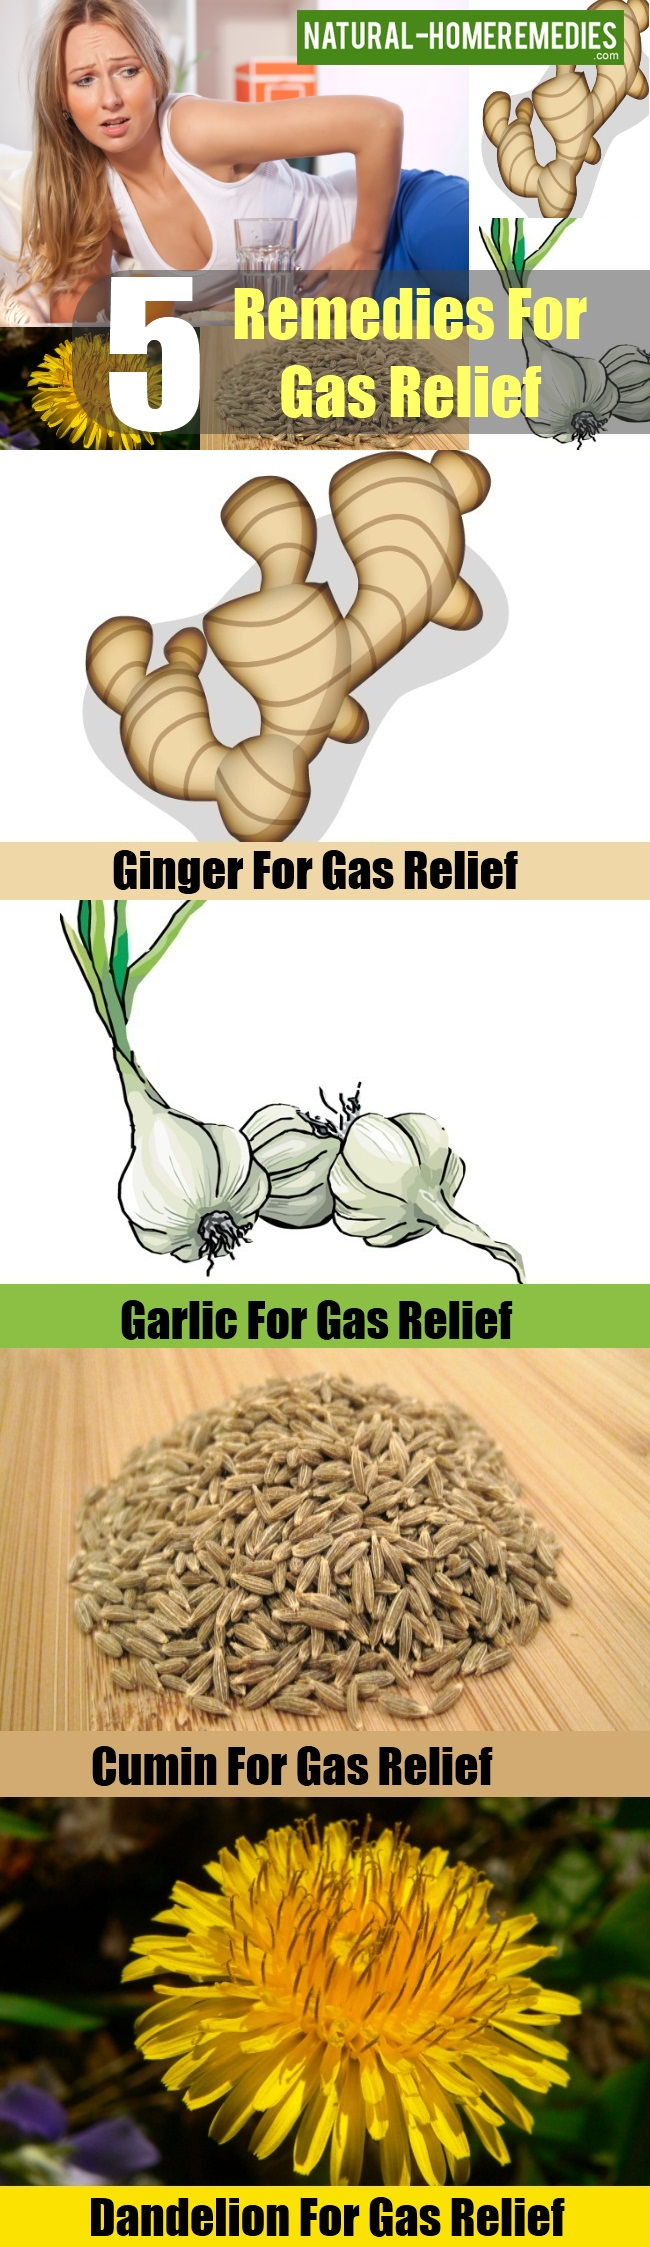 Remedies for Gas Relief